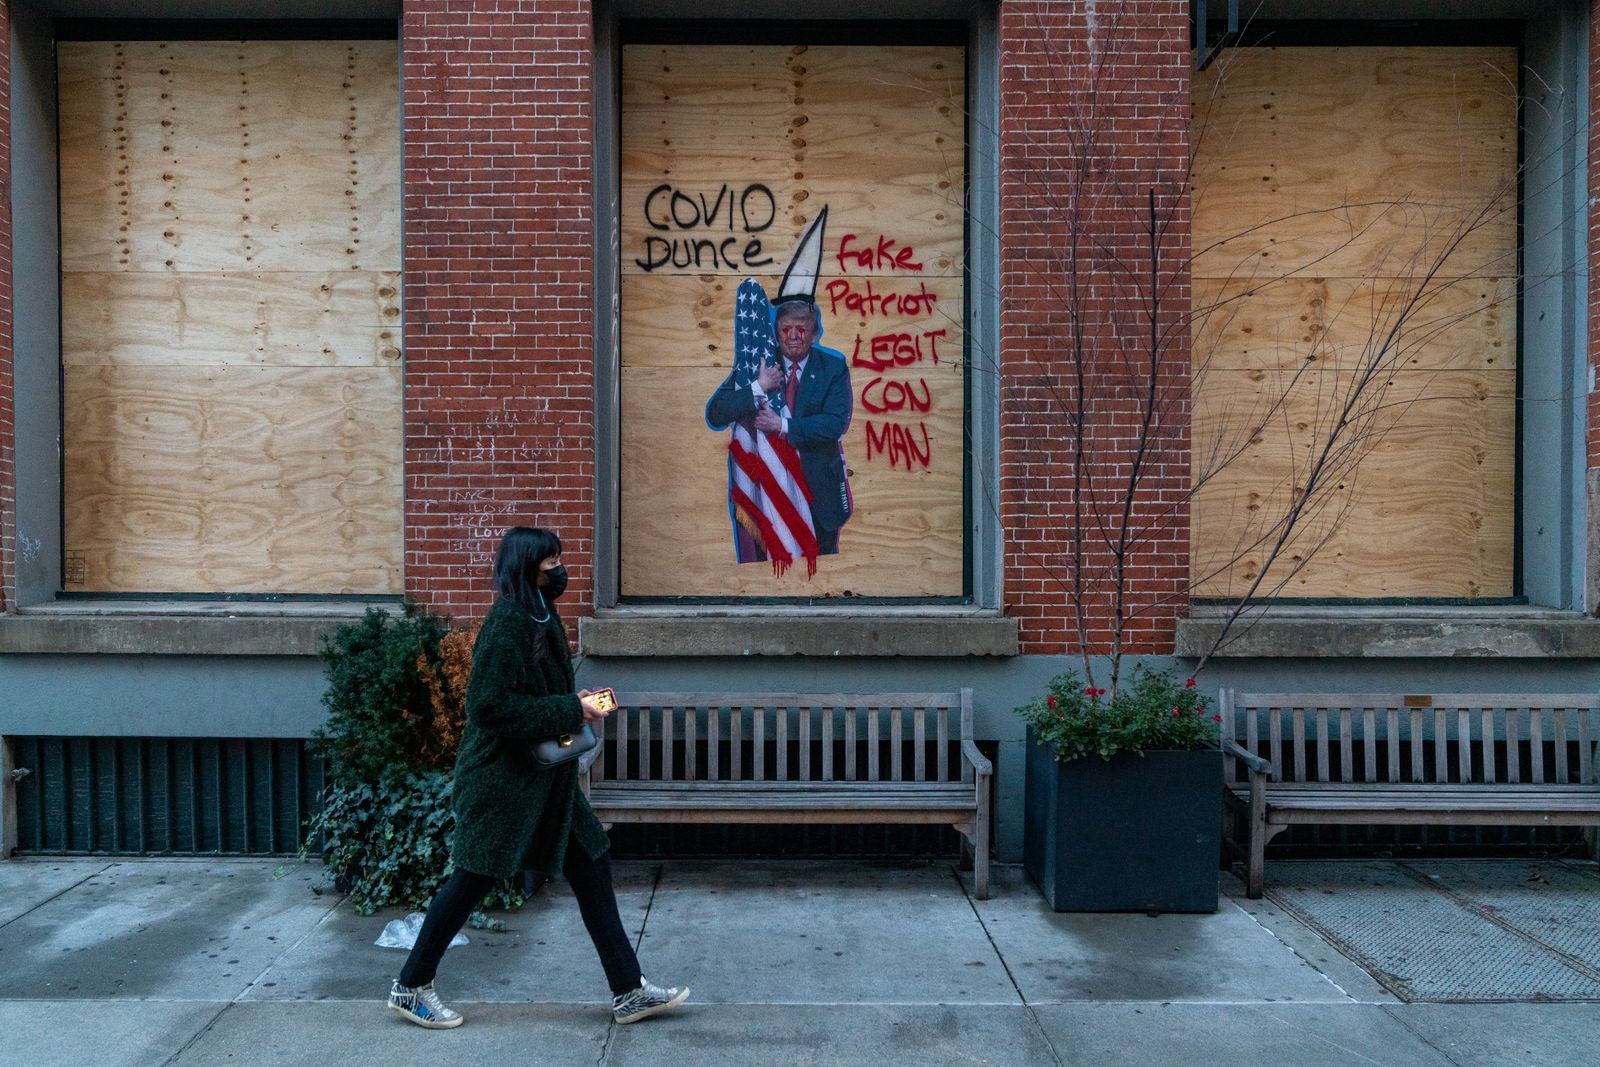 Businesses In New York City Board Up In Preparation Of Possible Election Day Unrest